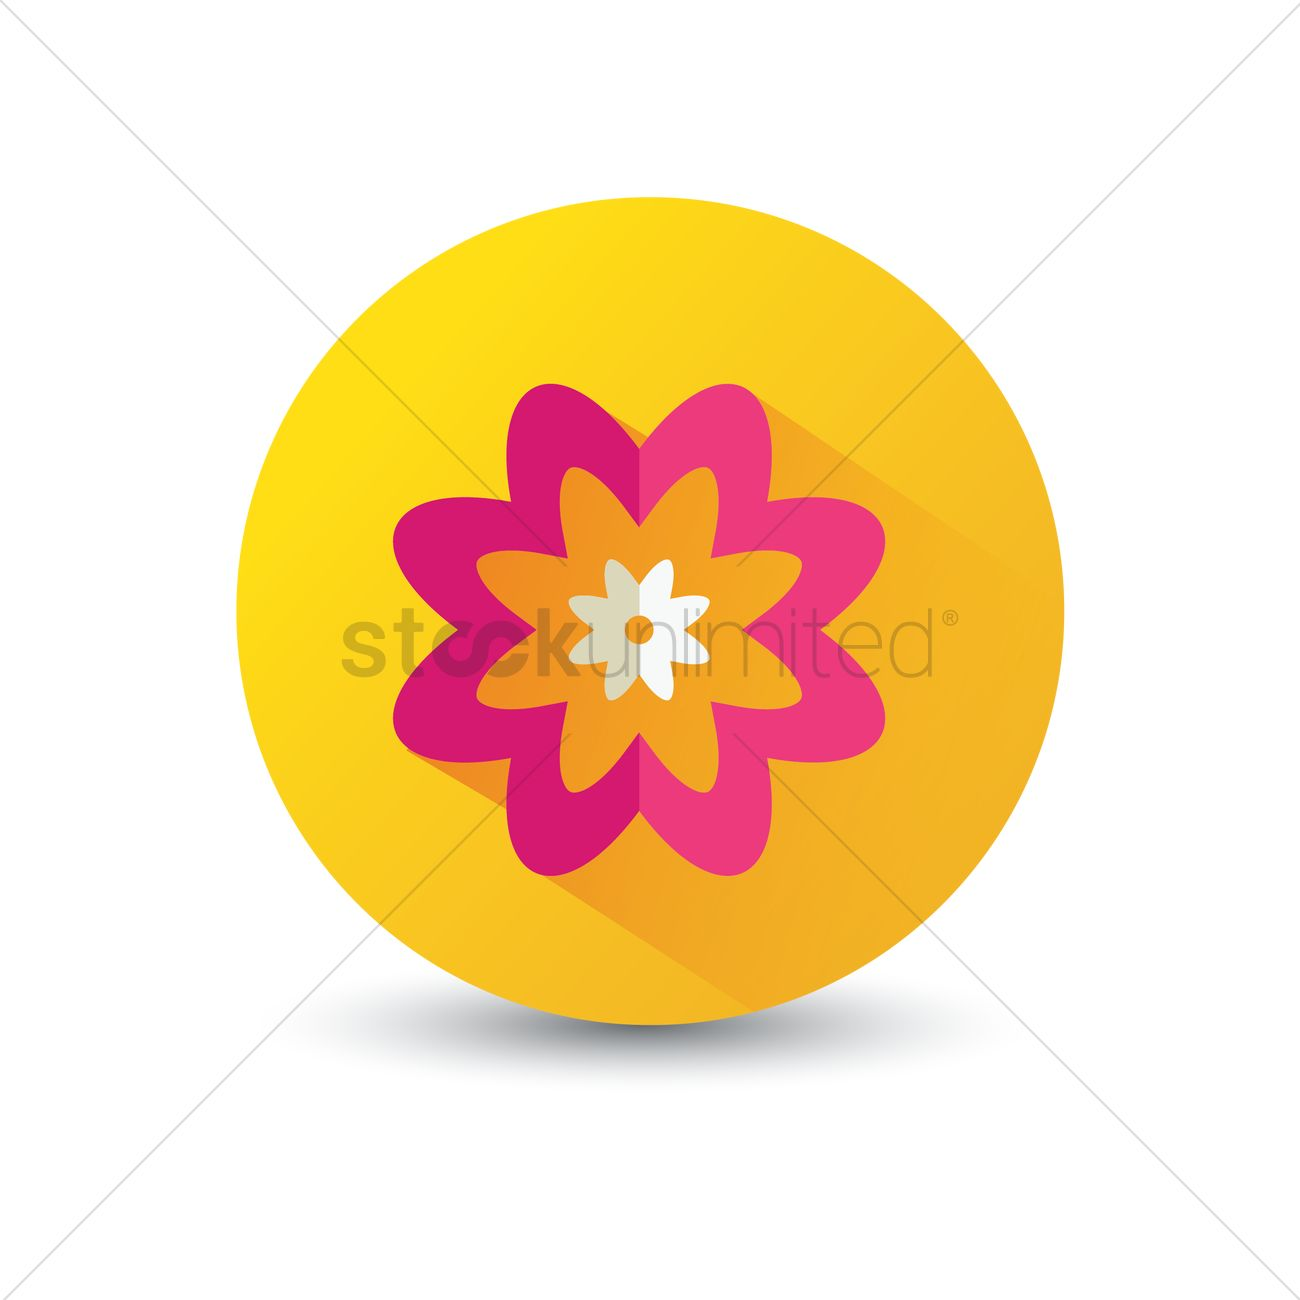 Flower Icon Vector Image 1375043 Stockunlimited